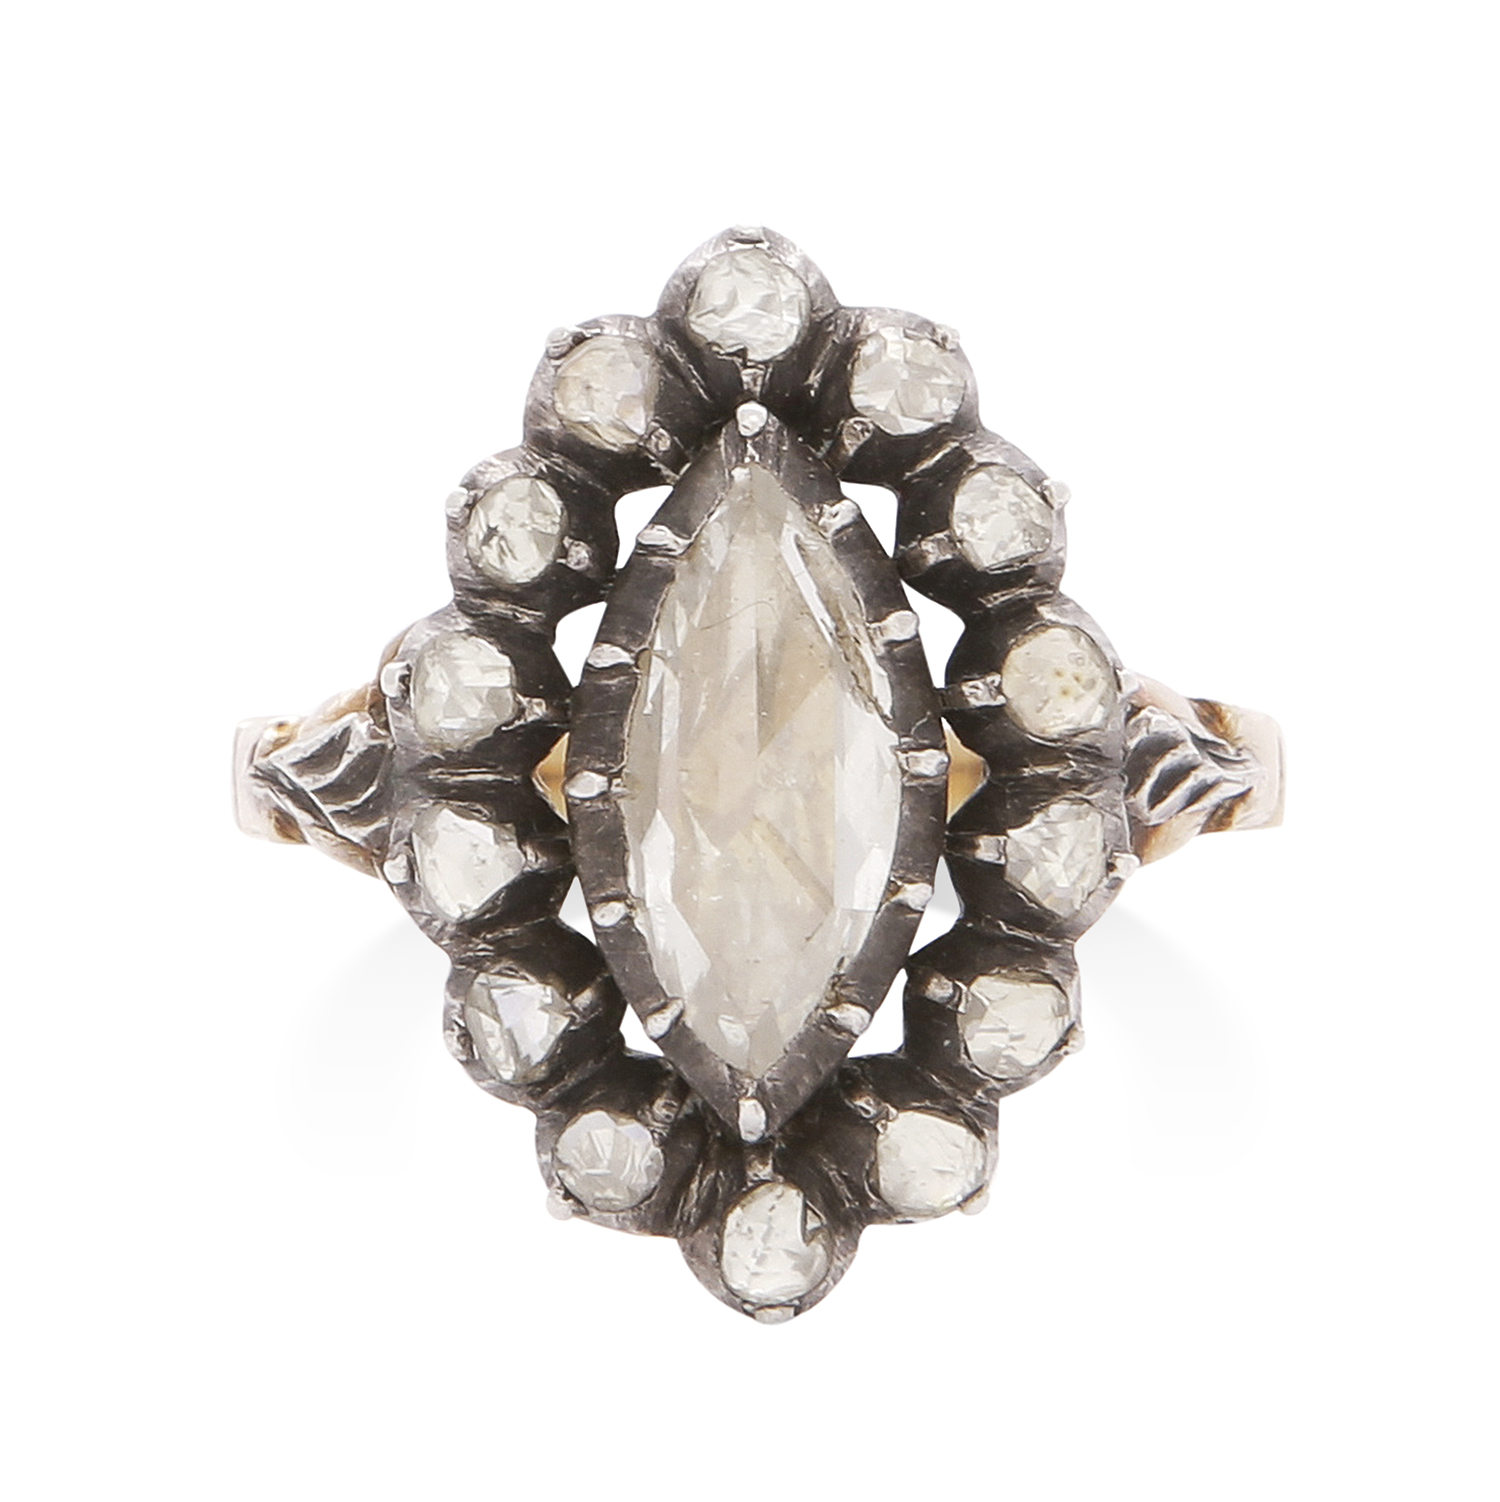 Los 24 - AN ANTIQUE DIAMOND CLUSTER RING, DUTCH 19TH CENTURY in high carat yellow gold and silver, the